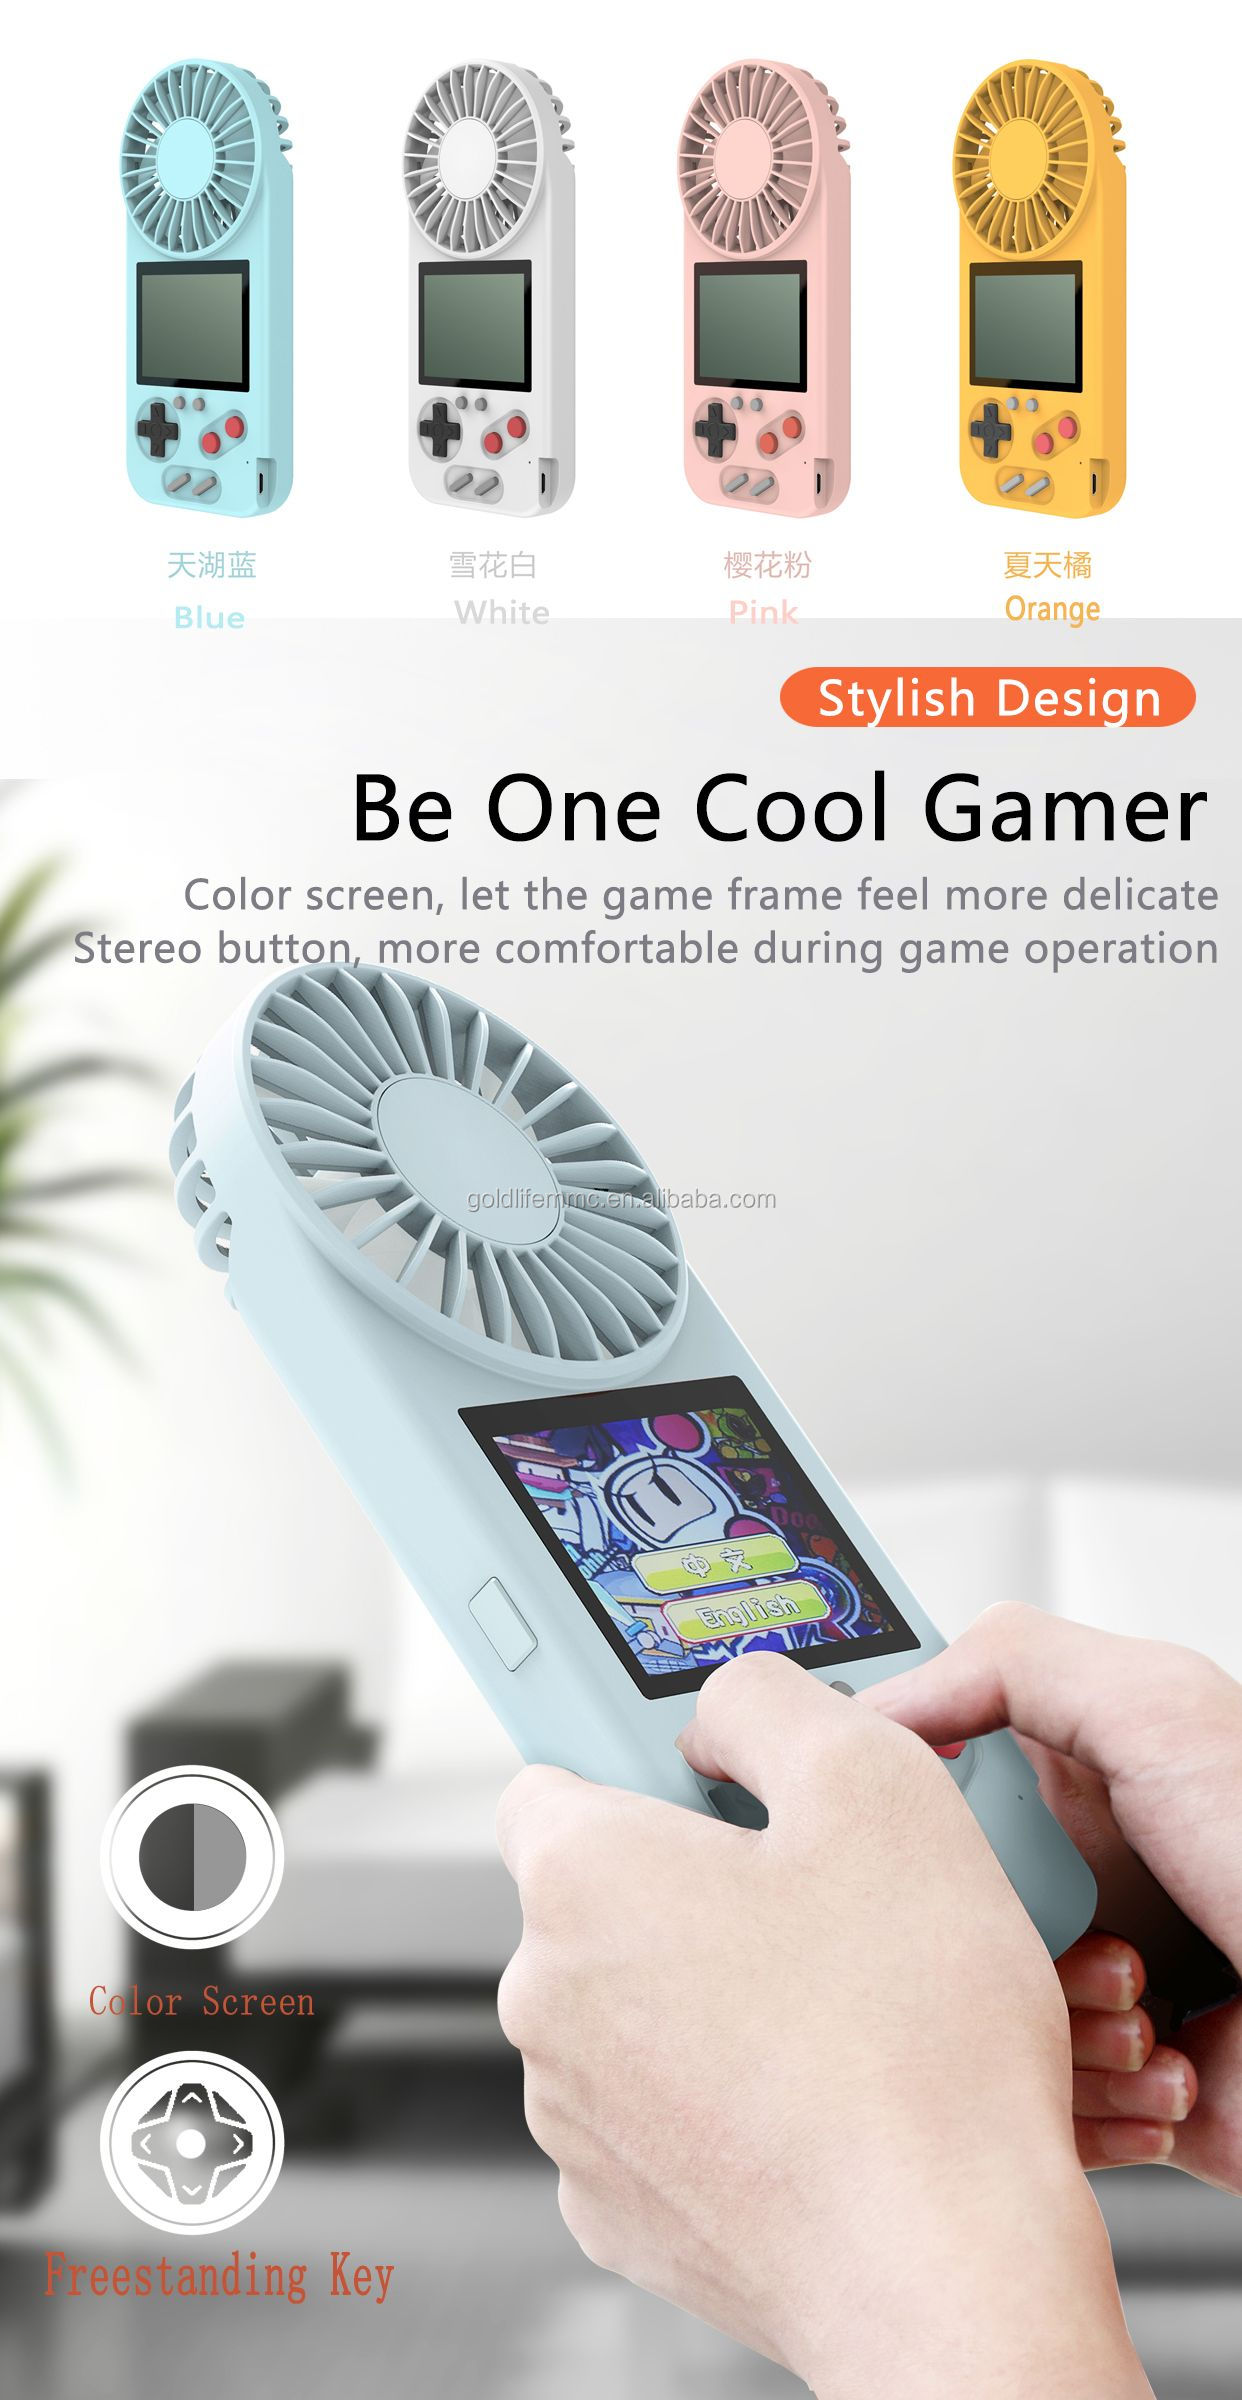 2020 New Design Summer Air Cooling Handheld Small Fan with Game